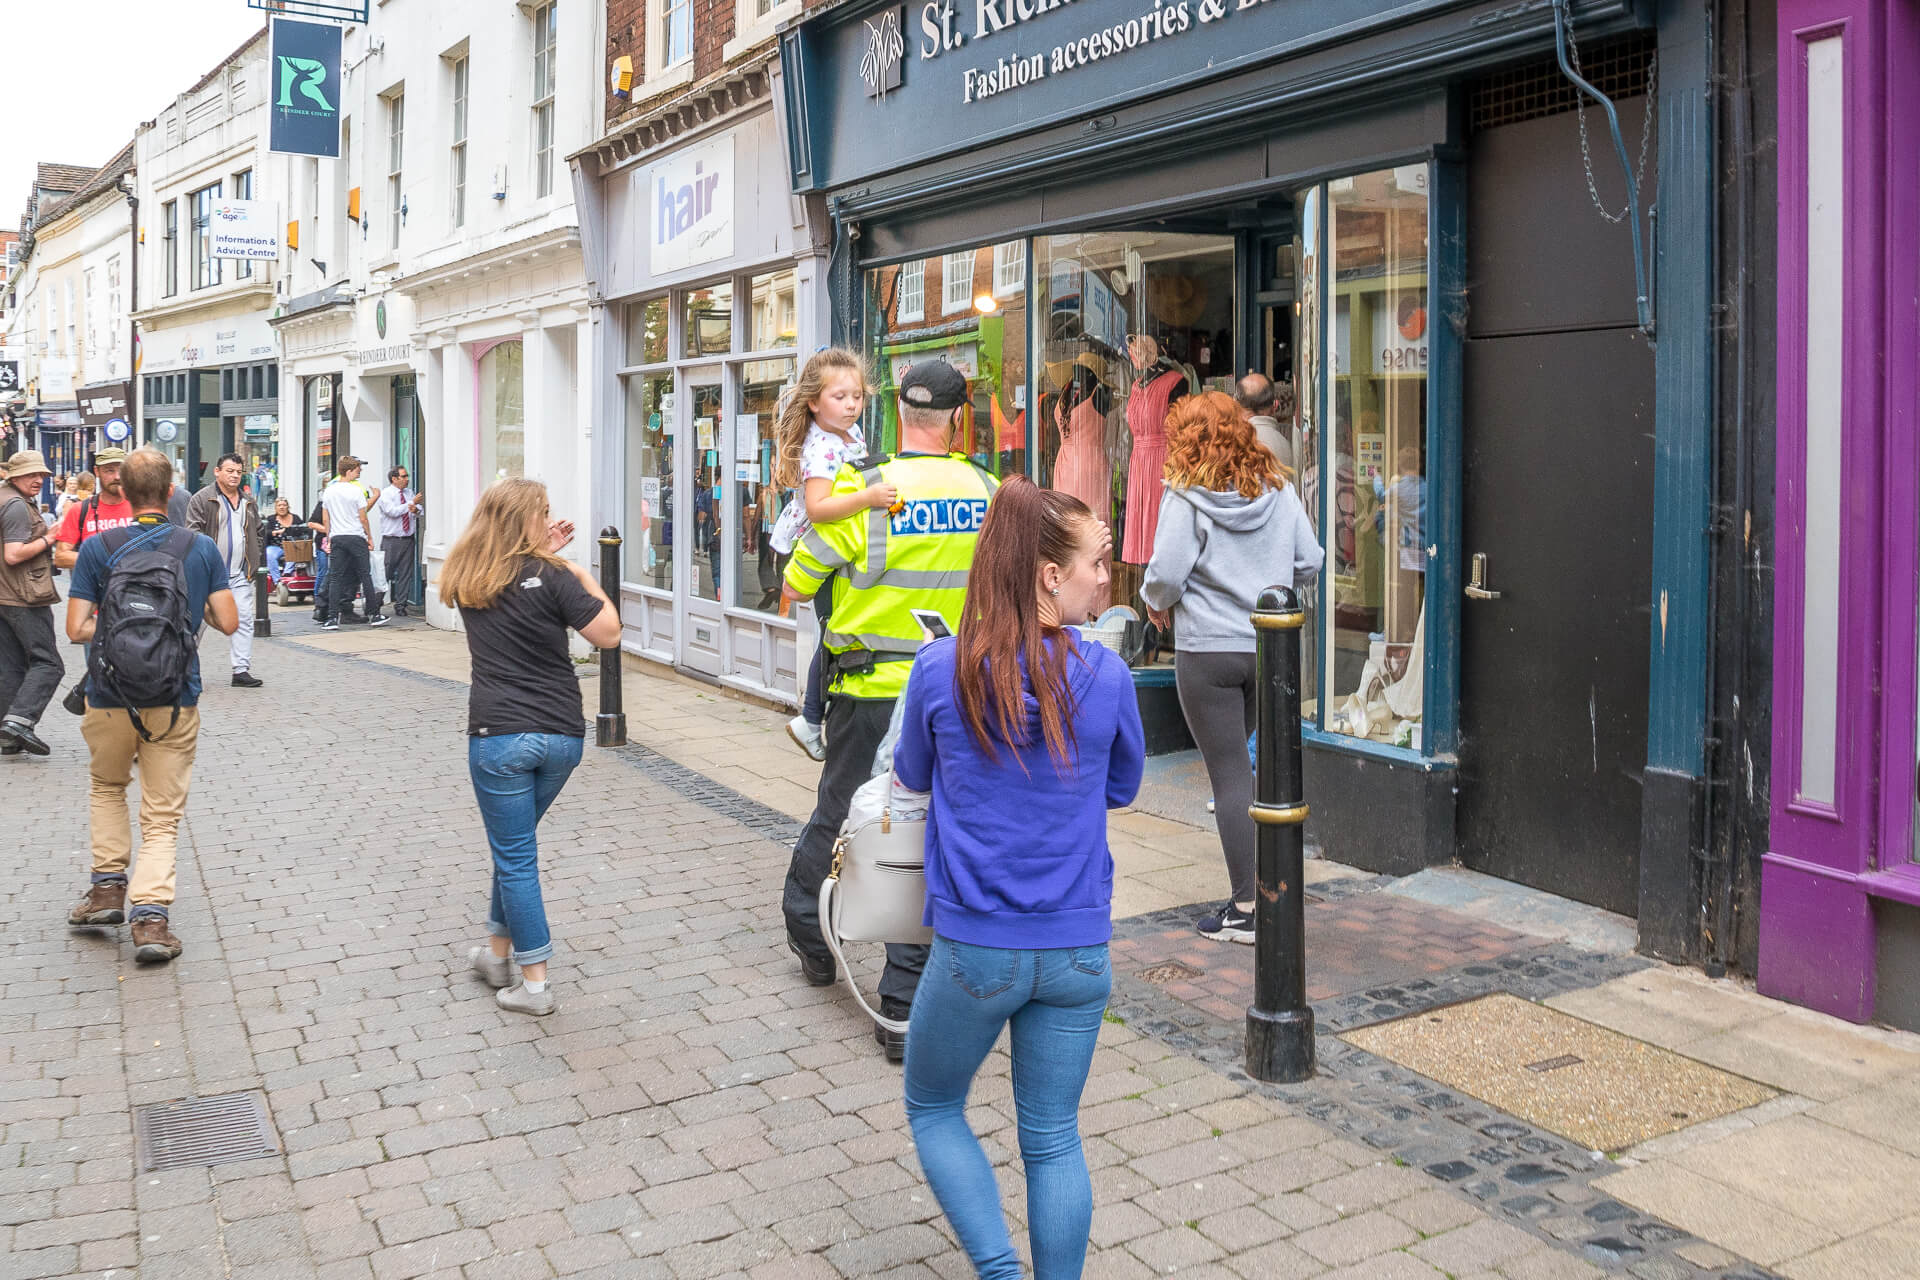 A colour image of a small girl who has been picked up by, and who is now being carried to safety by a Policeman at the BNP Marches in Worcester in 2019. She was in danger of being 'consumed' by the crowd and this act saved her from doing so.